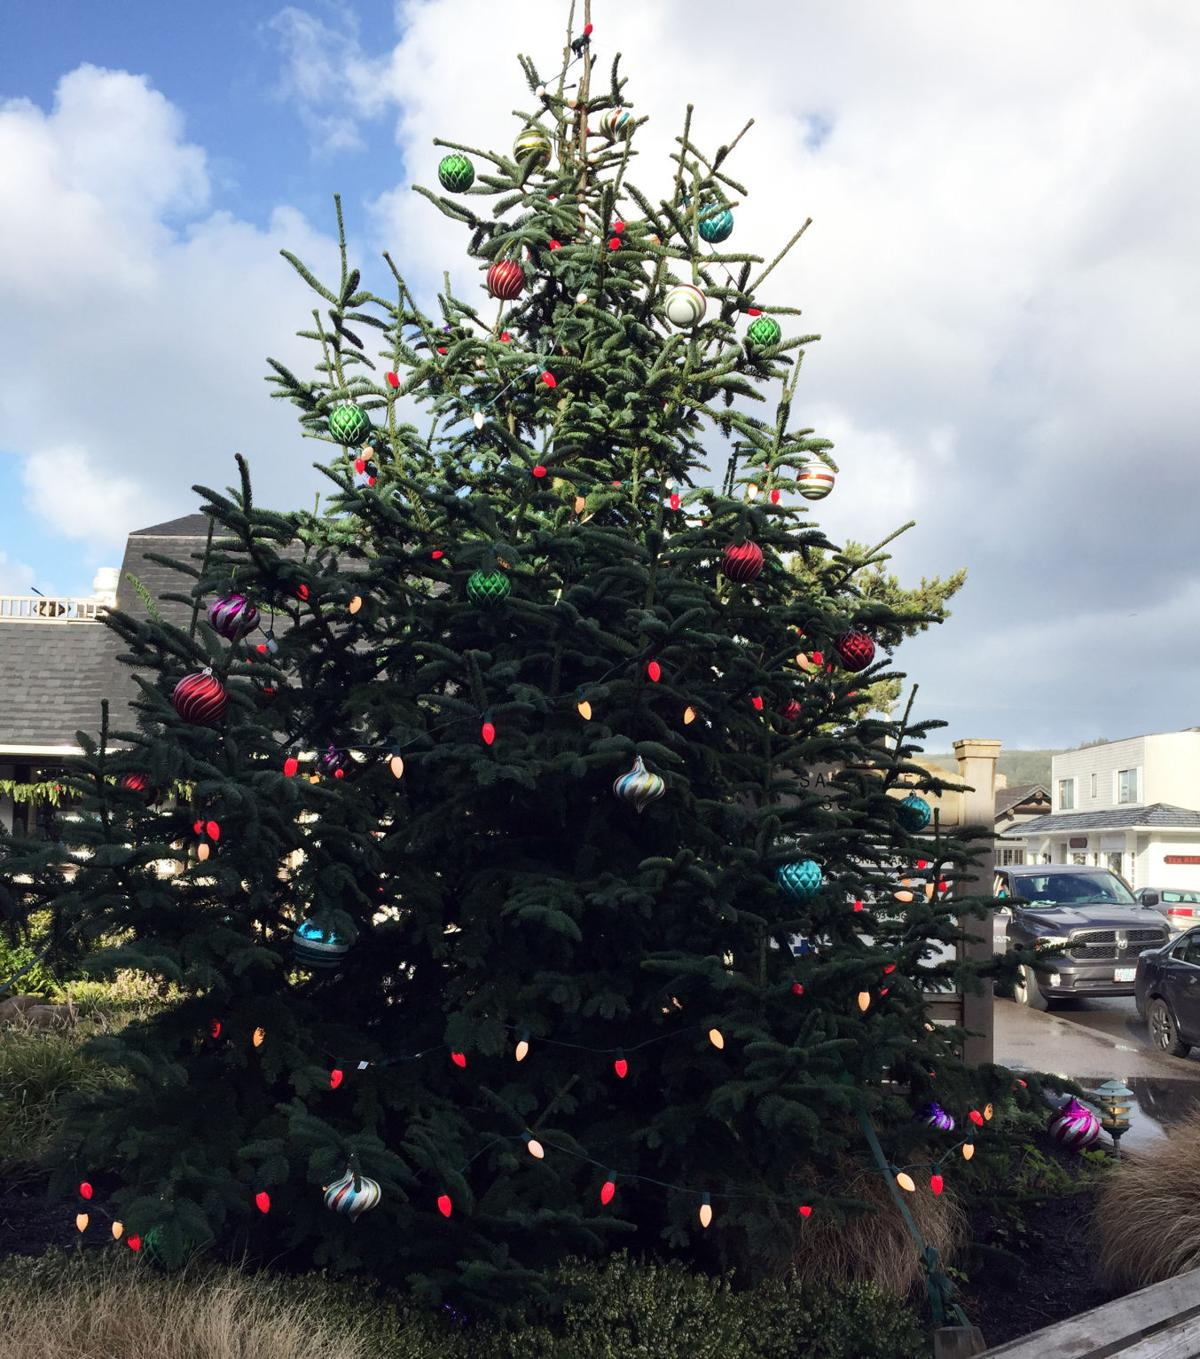 Holiday happenings in Cannon Beach